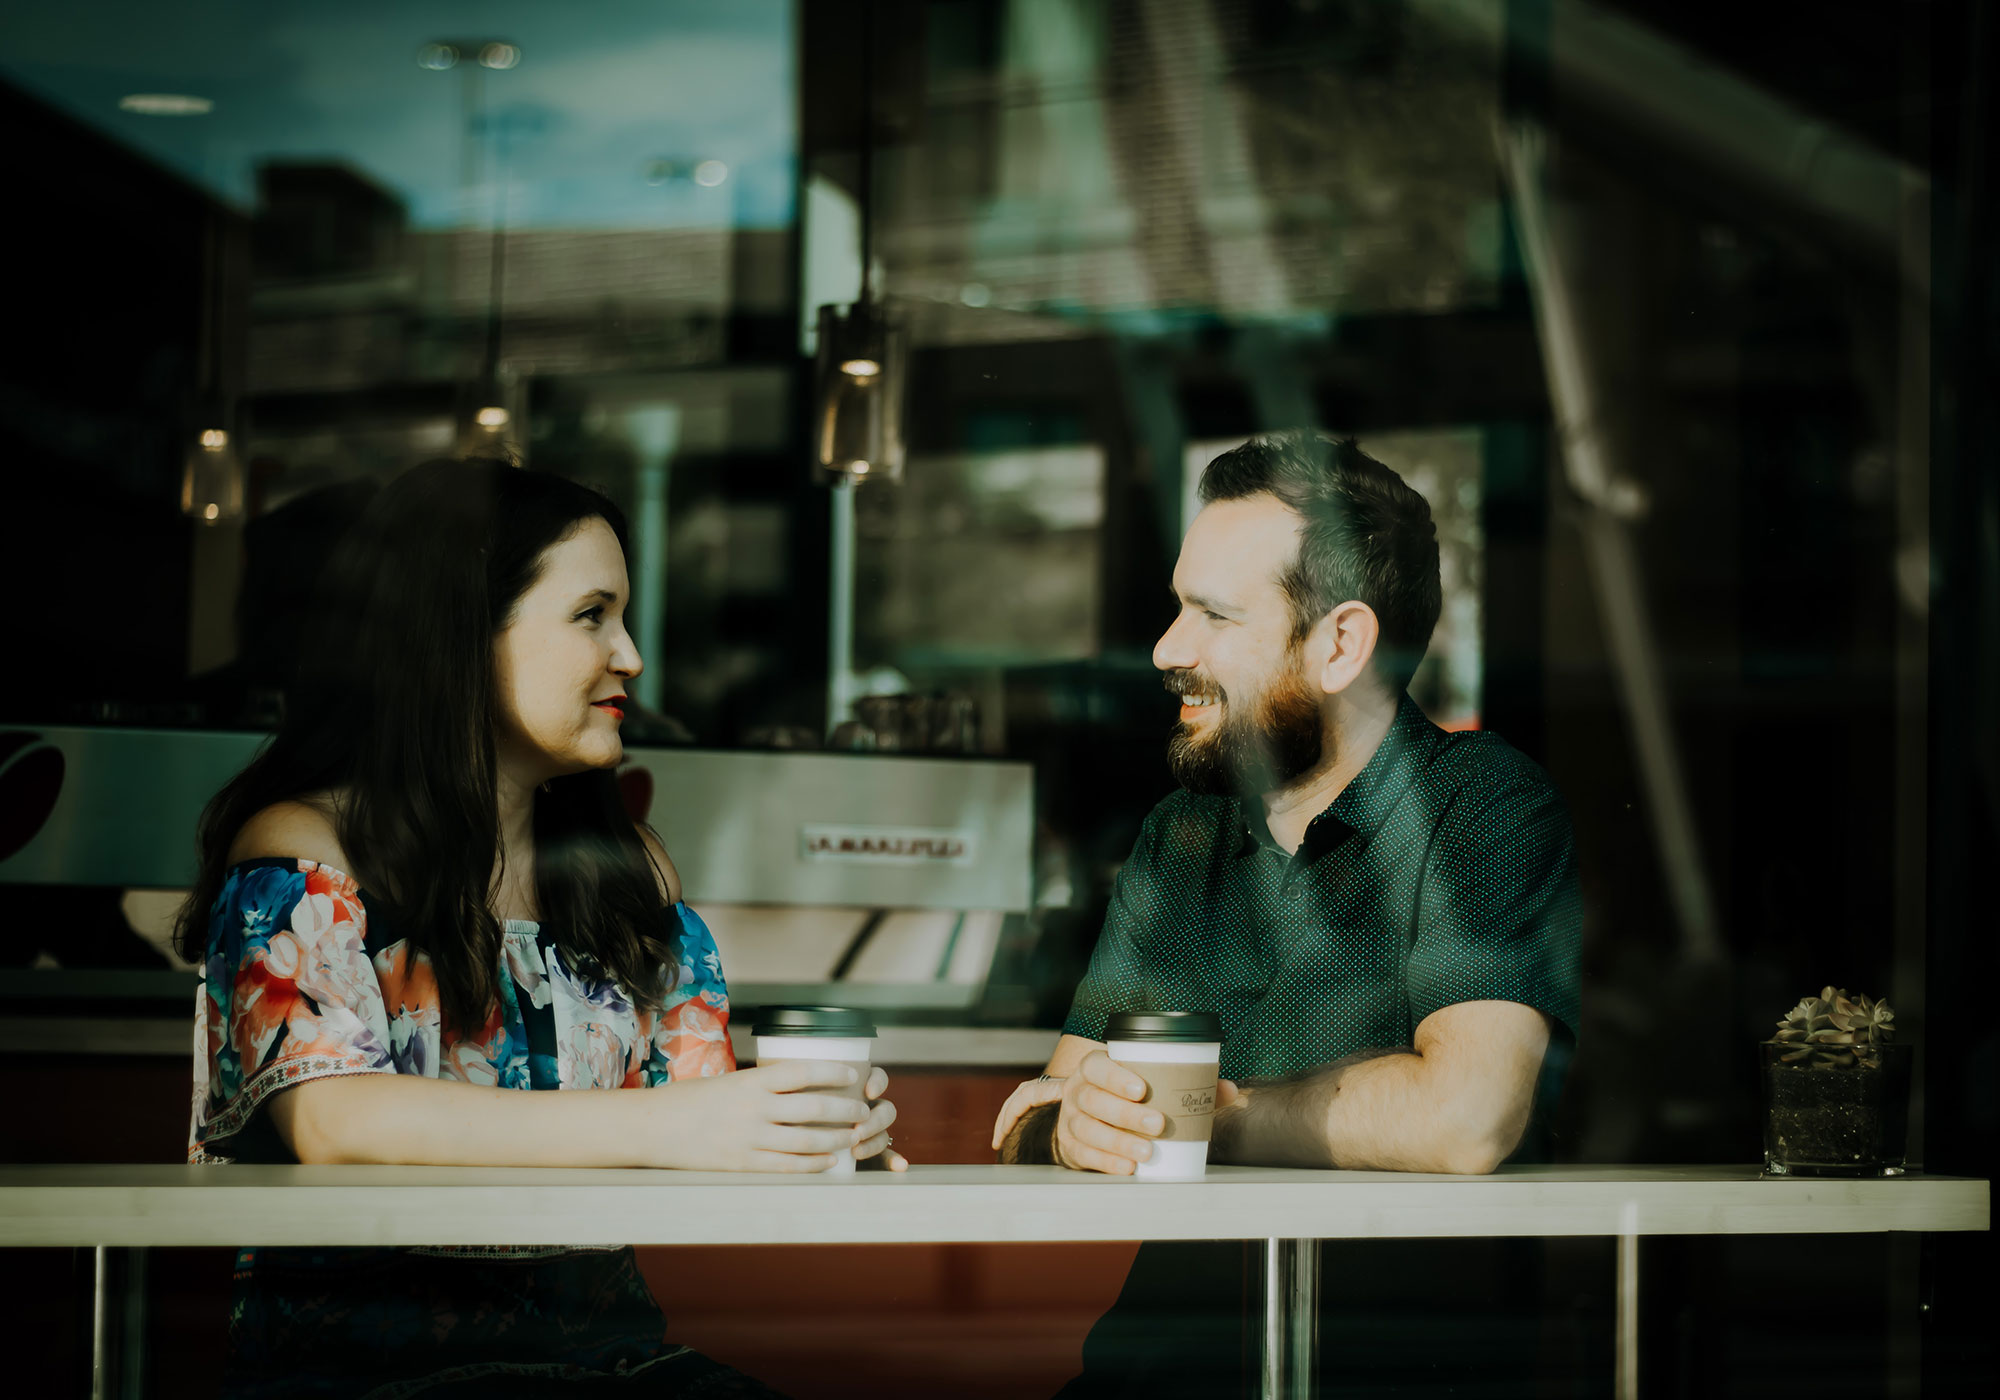 A woman and a man in a coffee house, looking at each other.